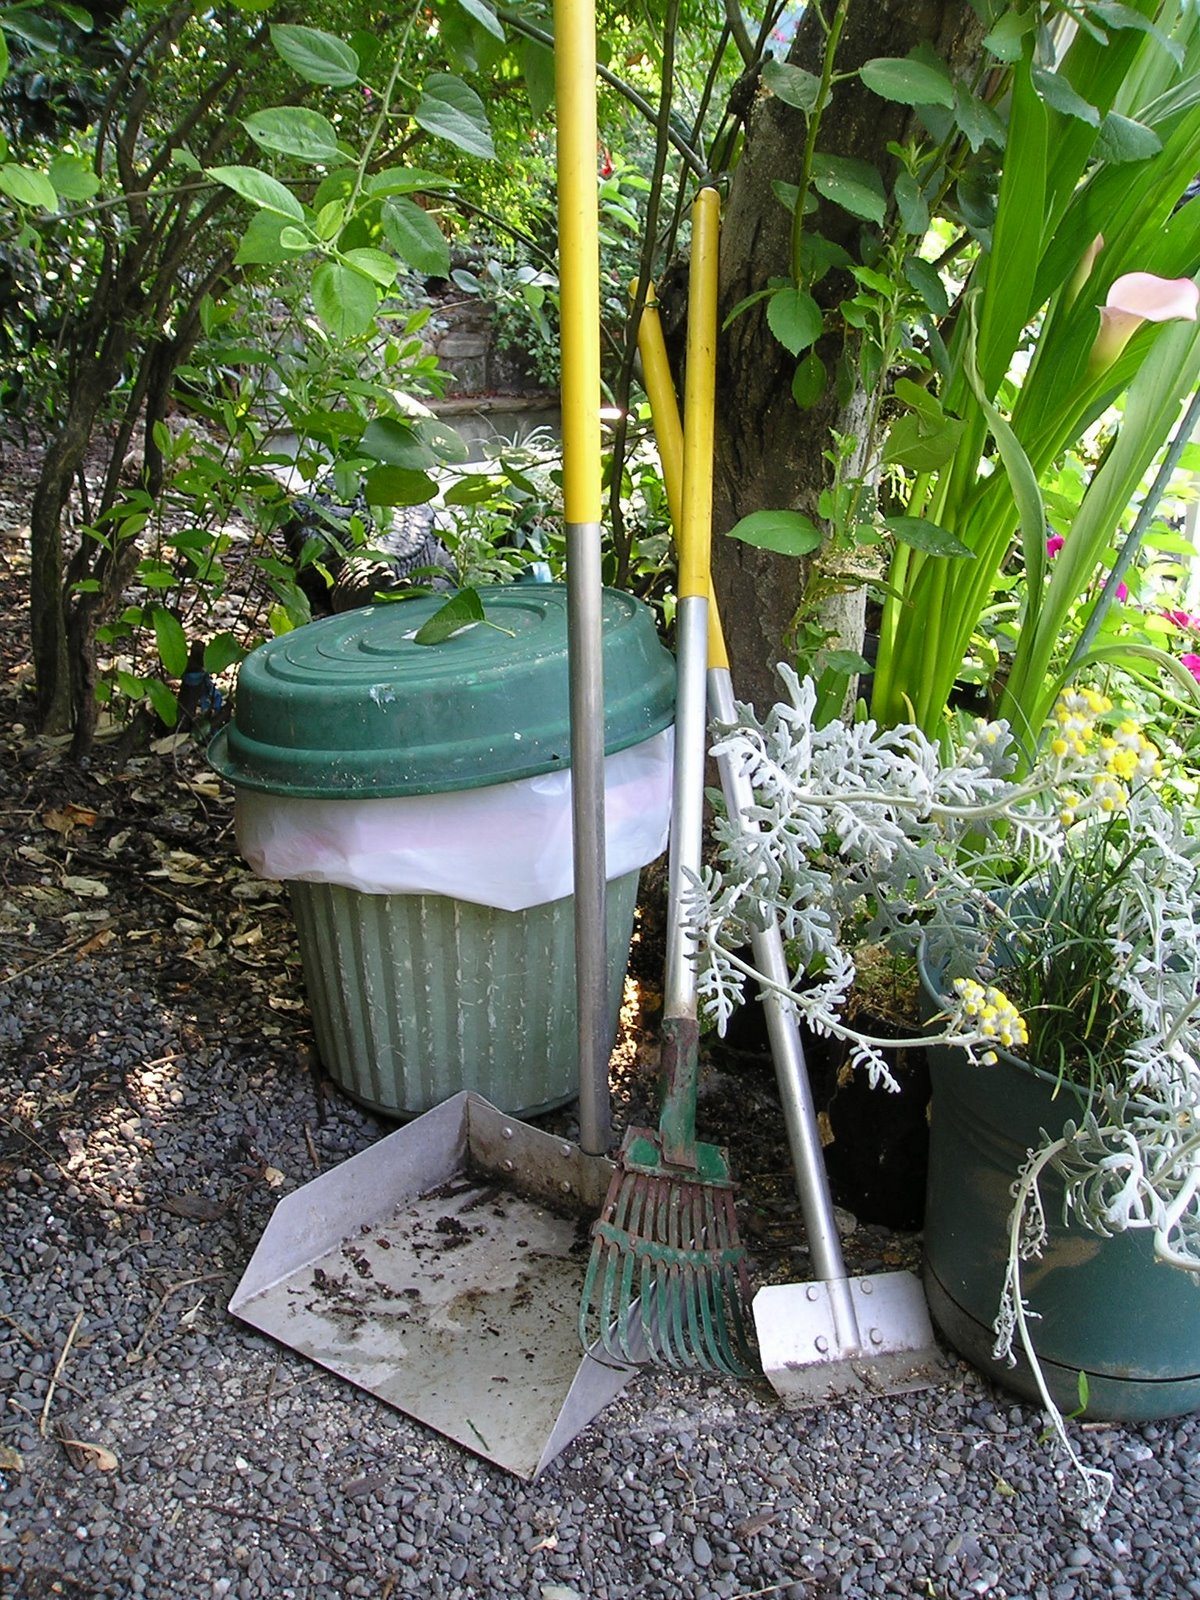 Backyard Clean Up How To Make Cleaning Your Backyard A Breeze Runyon Equipment